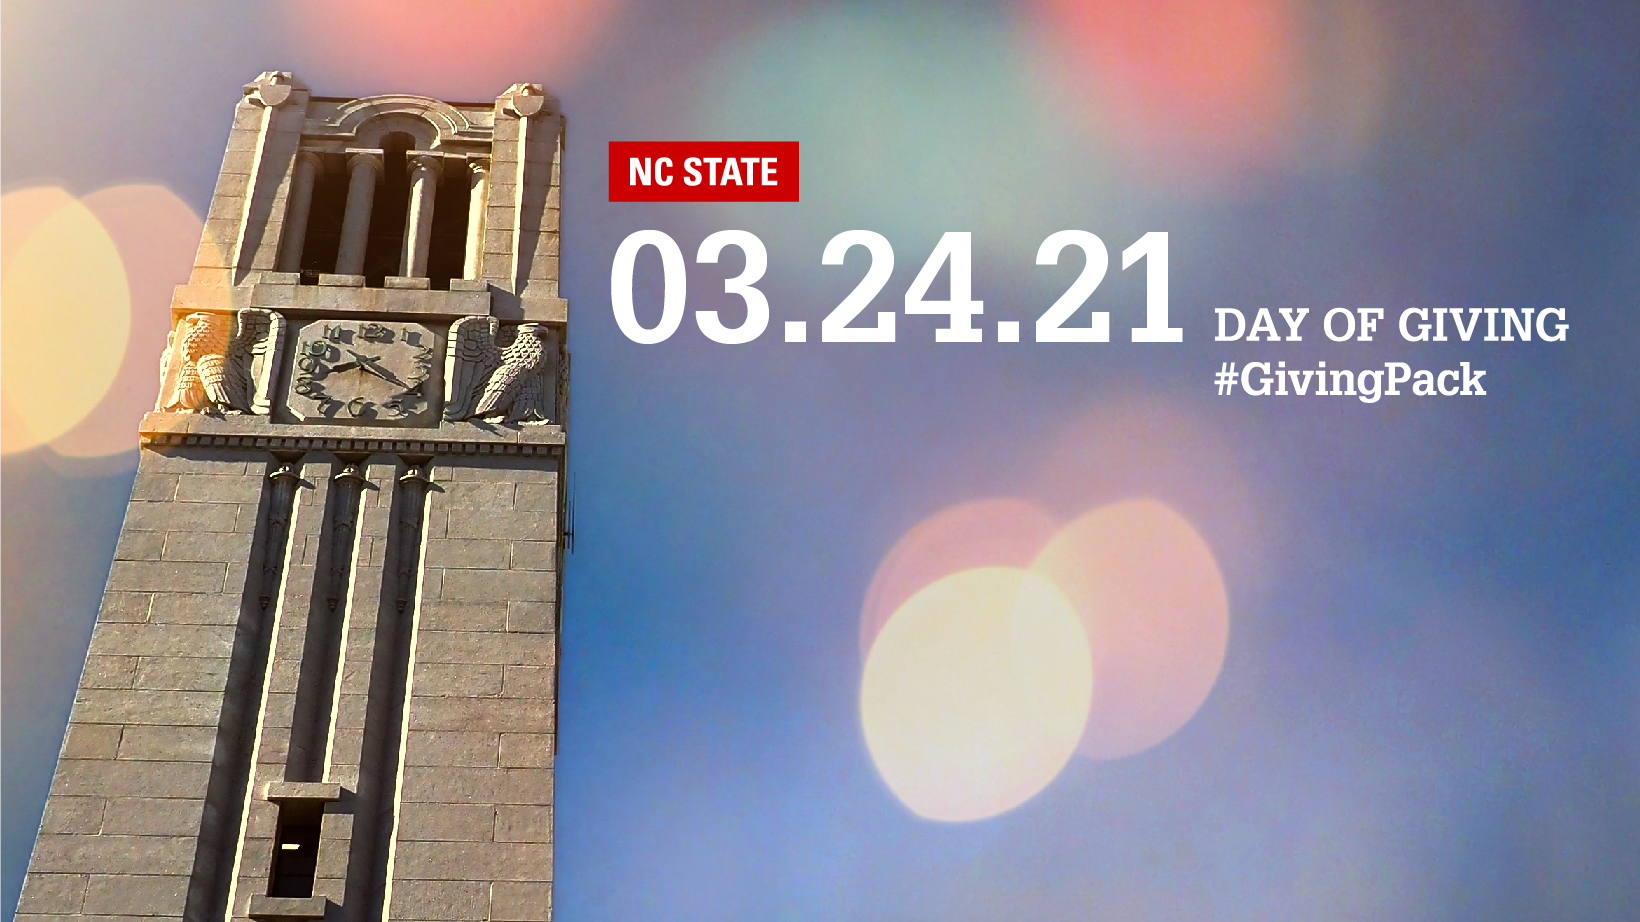 Facebook cover photo with image of the NC State belltower and text reading NC State 03.24.21 Day of Giving Hashtag Giving Pack